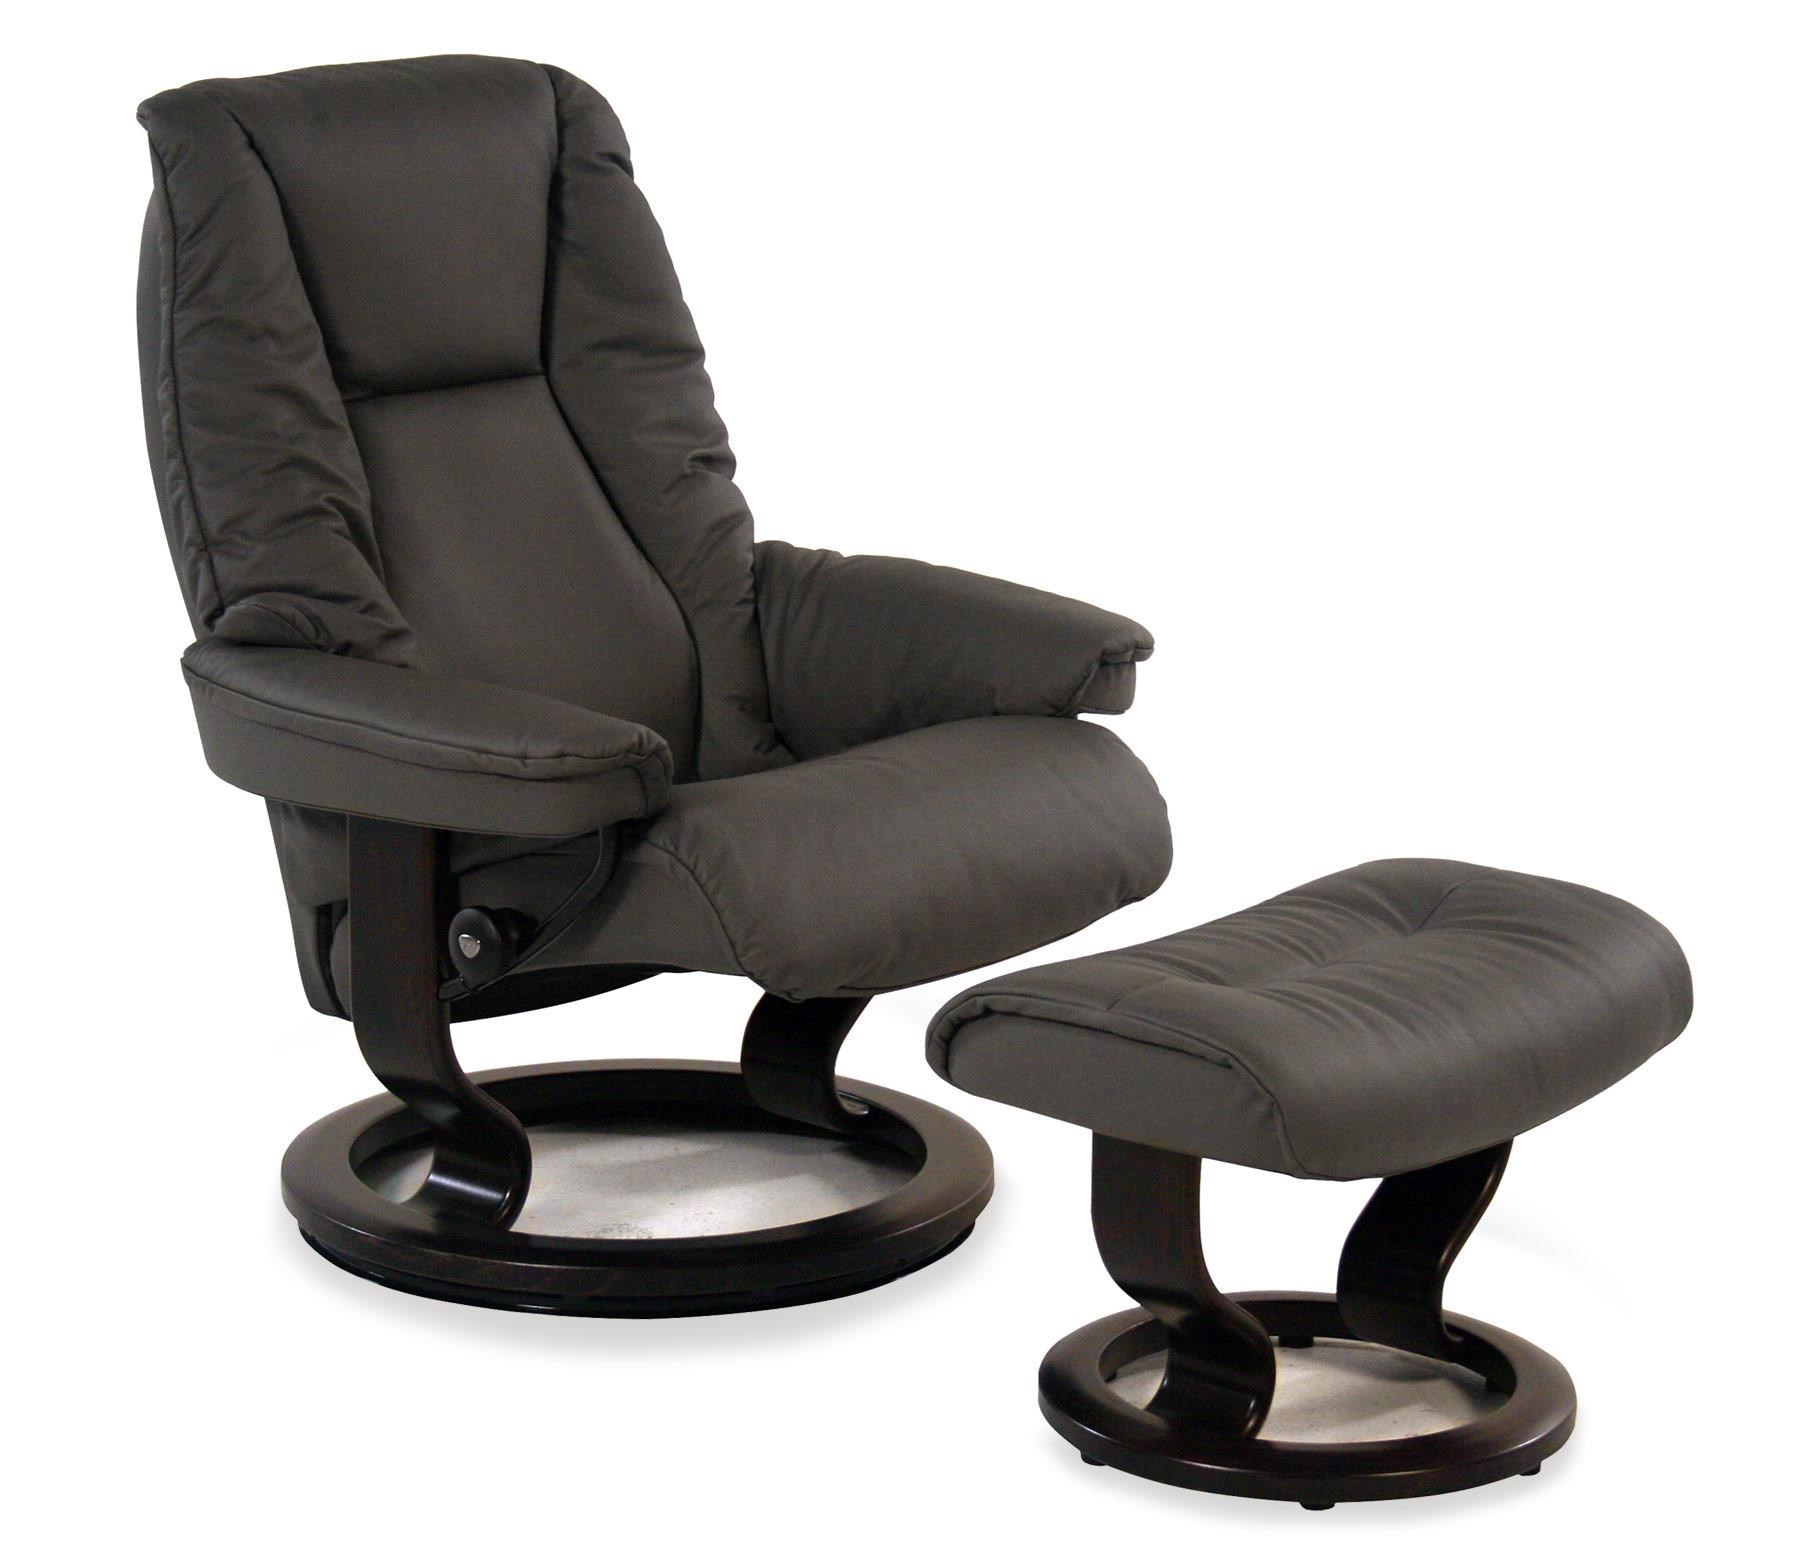 Stressless By Ekornes LiveMedium Classic Chair